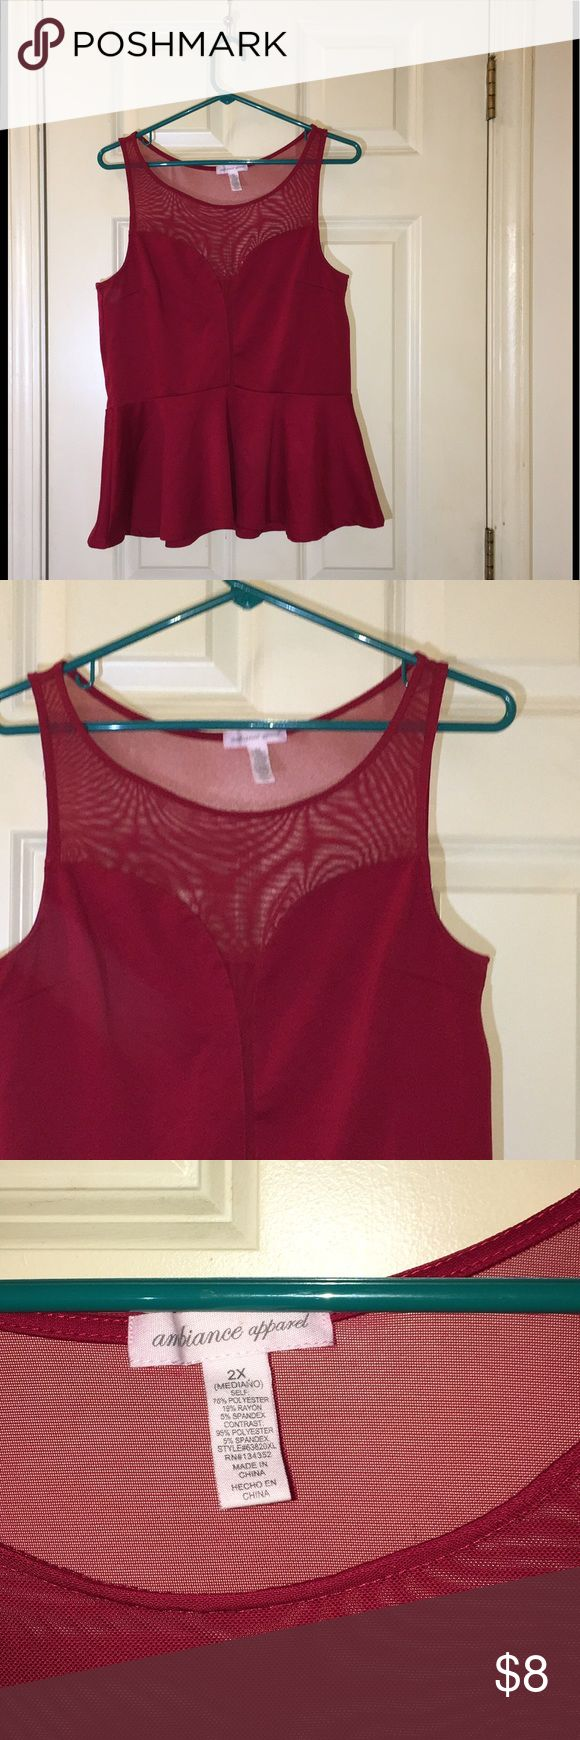 Red Peplum Top by Ambiance Apparel 2X Red peplum tank top.  Neck area has mesh.  Made by Ambiance Apparel.   Size 2X.  Great condition.  Important:   All items are freshly laundered as applicable prior to shipping (new items and shoes excluded).  Not all my items are from pet/smoke free homes.  Price is reduced to reflect this!   Thank you for looking! Ambiance Apparel Tops Tank Tops